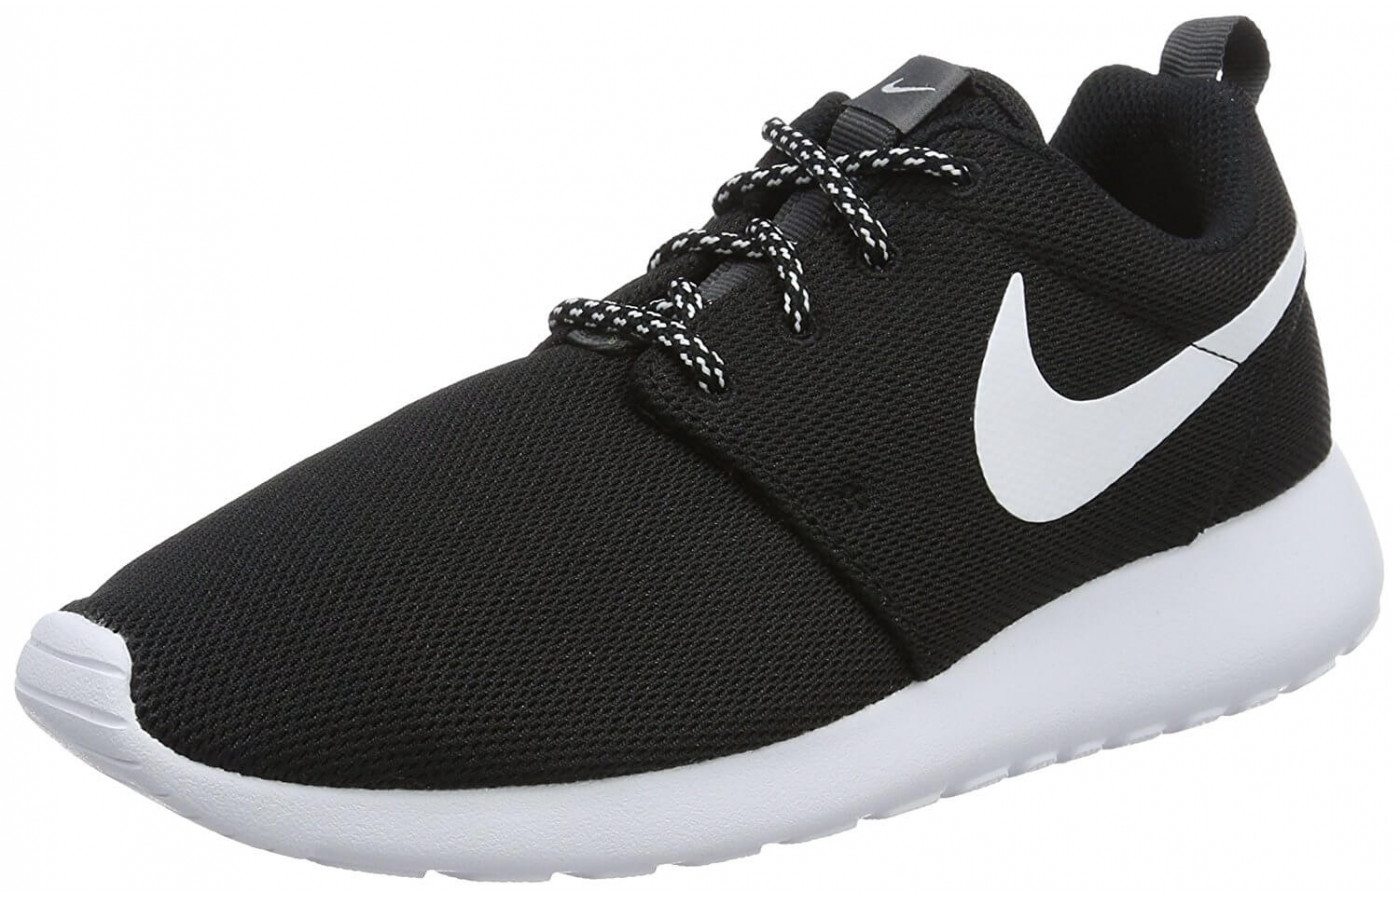 7c769734ffb4 Nike Roshe One Reviewed - To Buy or Not in Apr 2019